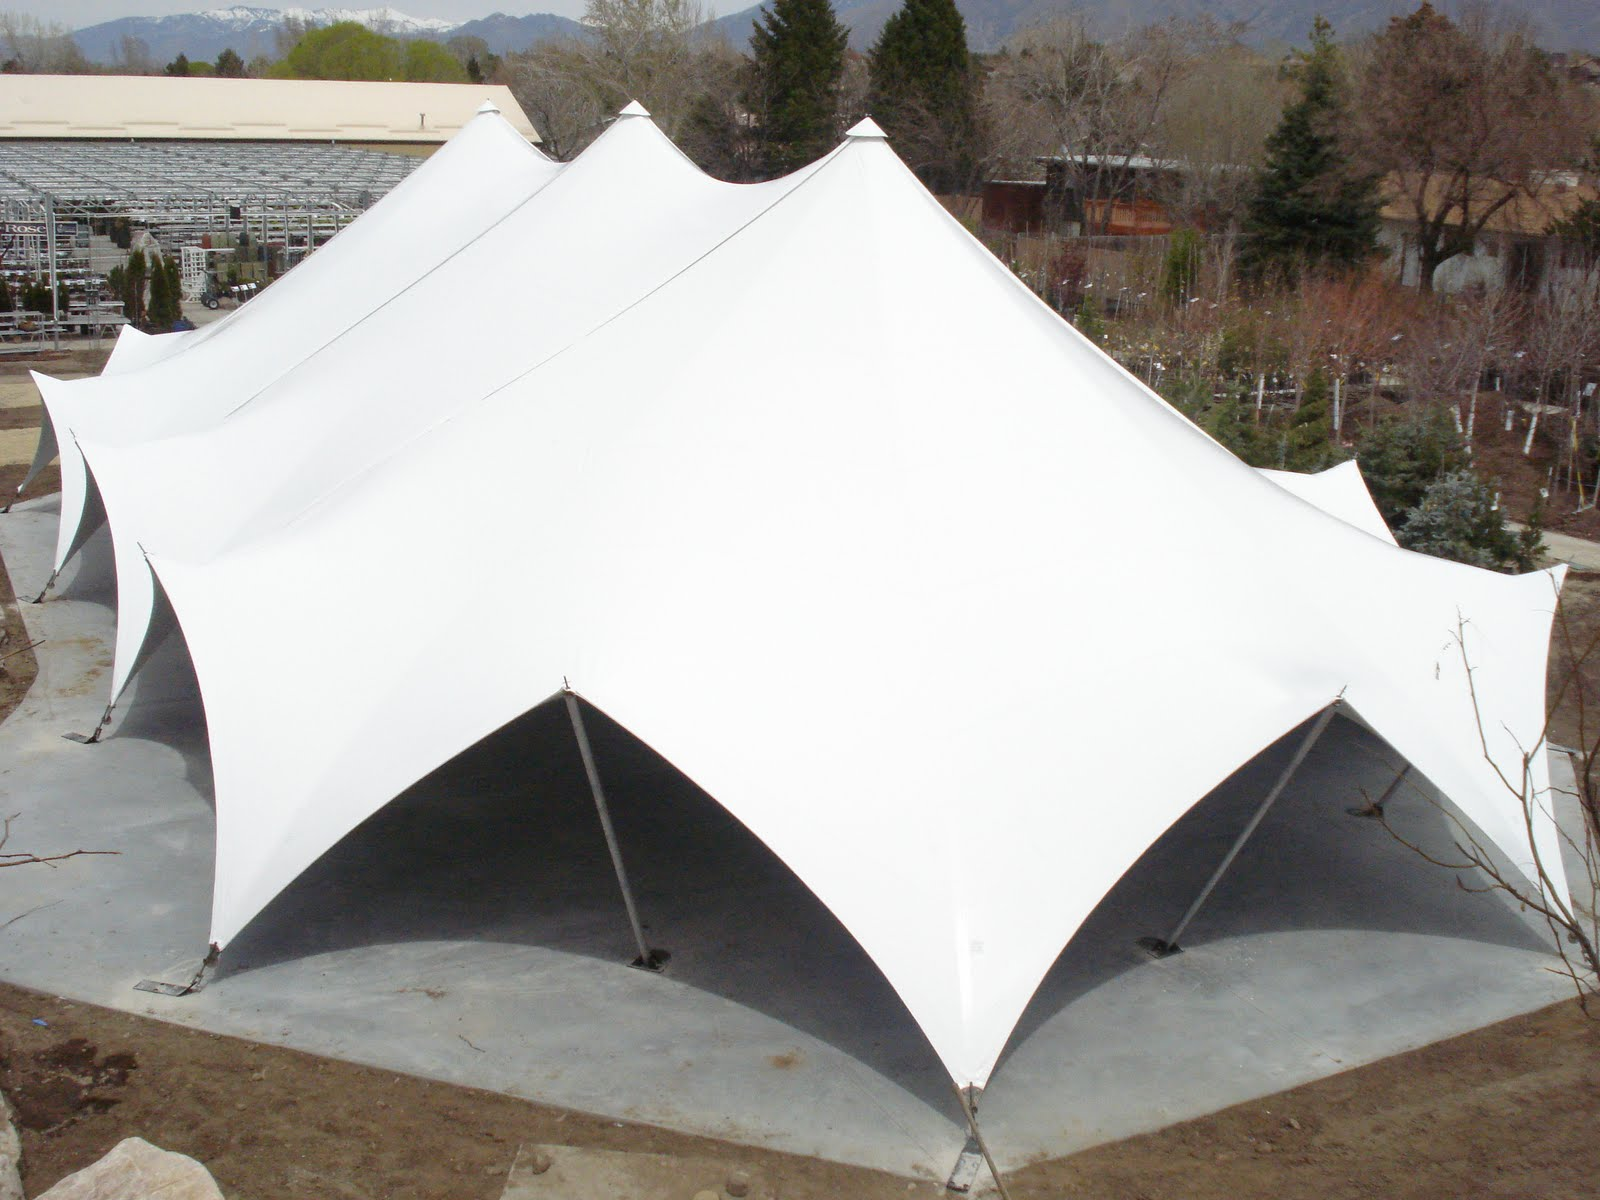 ... to your existing venue but donu0027t want to increase your taxes or building an extension is not in your budget? Try adding a heavy duty elegant tent from ... & Armbruster Manufacturing Co. | Try a Party Tent as an building ...